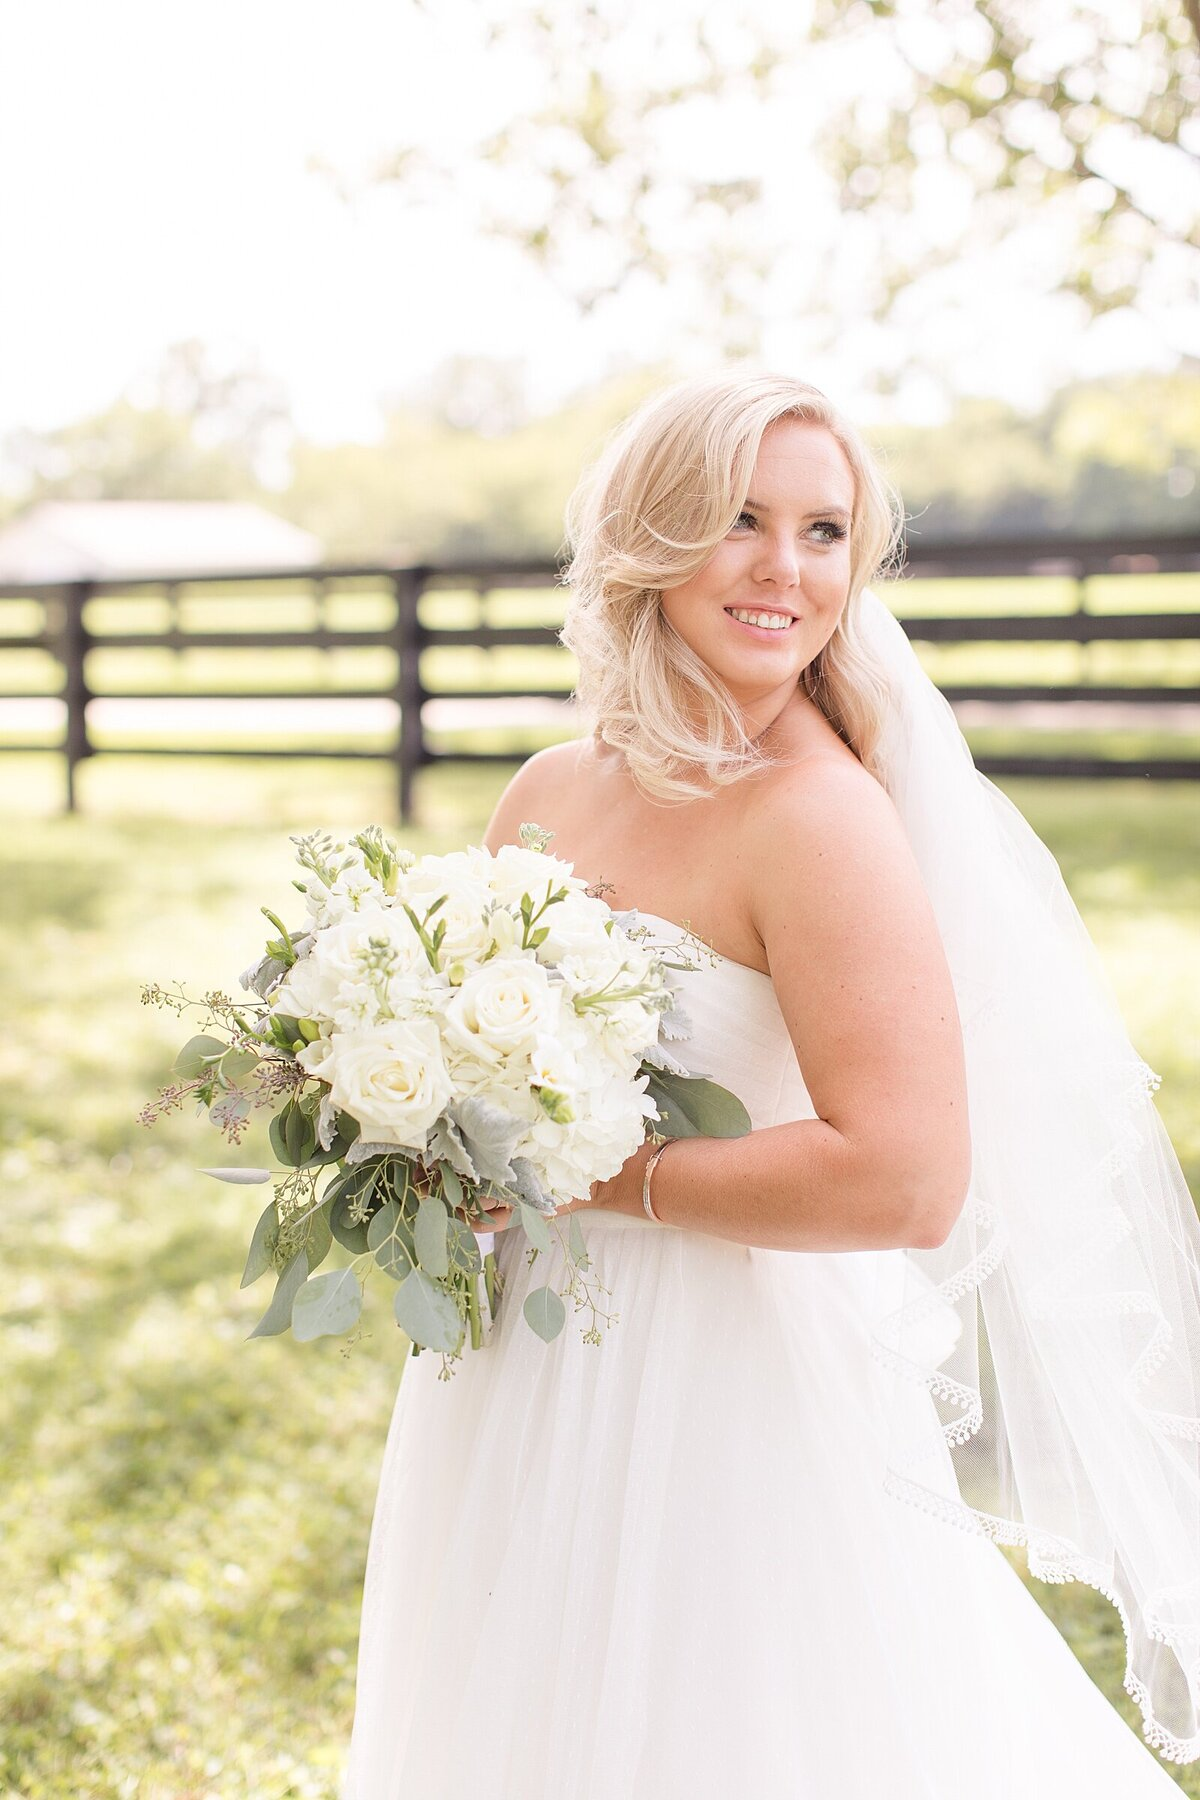 Kara Webster Photography | Mac & Maggie | Bradshaw-Duncan House Louisville, KY Wedding Photographer_0046